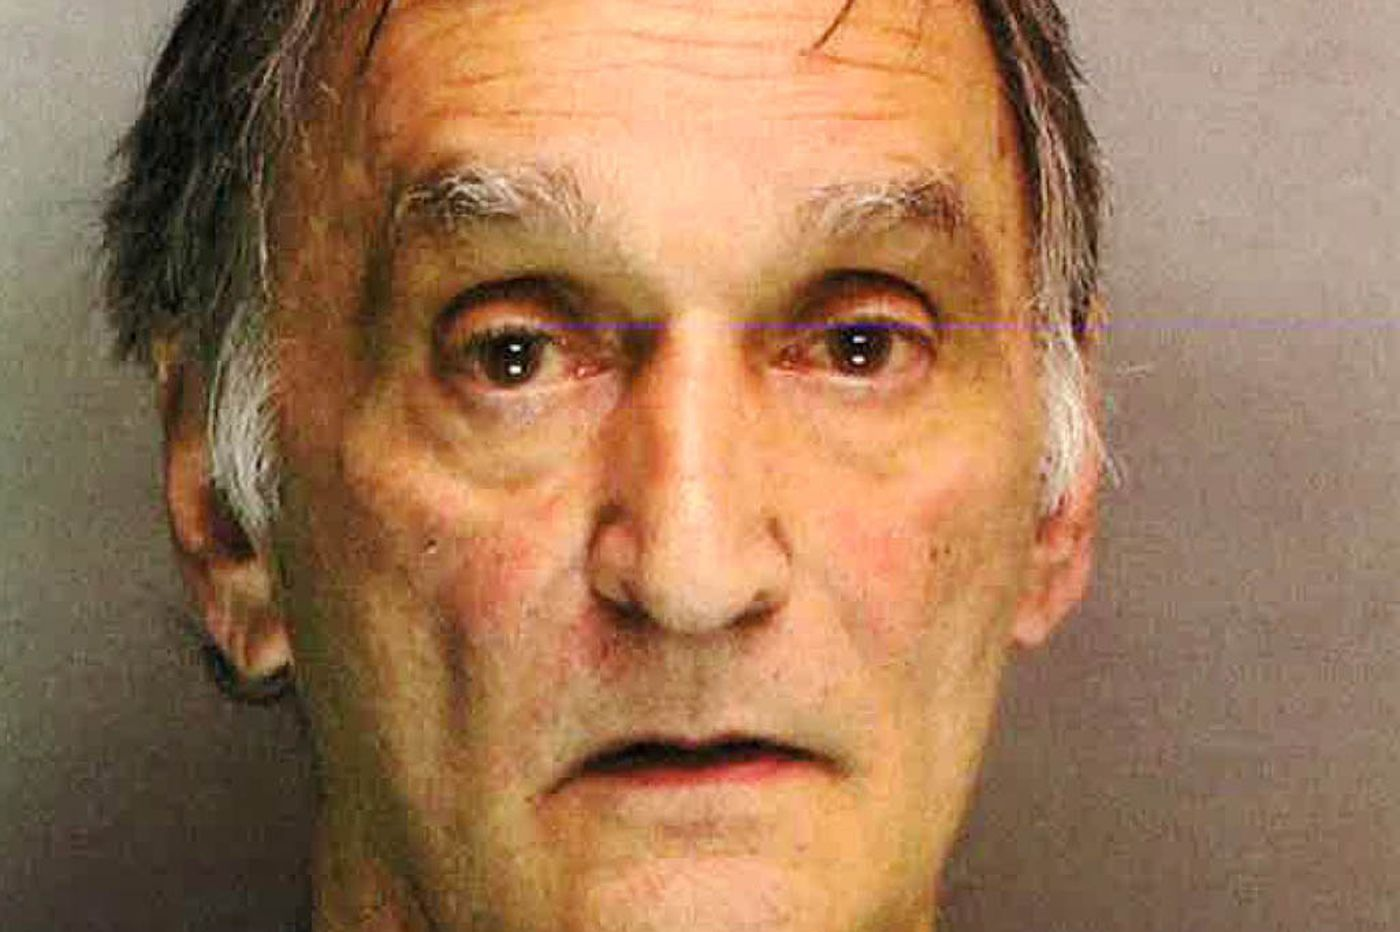 Owner of Old City magic venue accused of assaulting 13-year-old girl